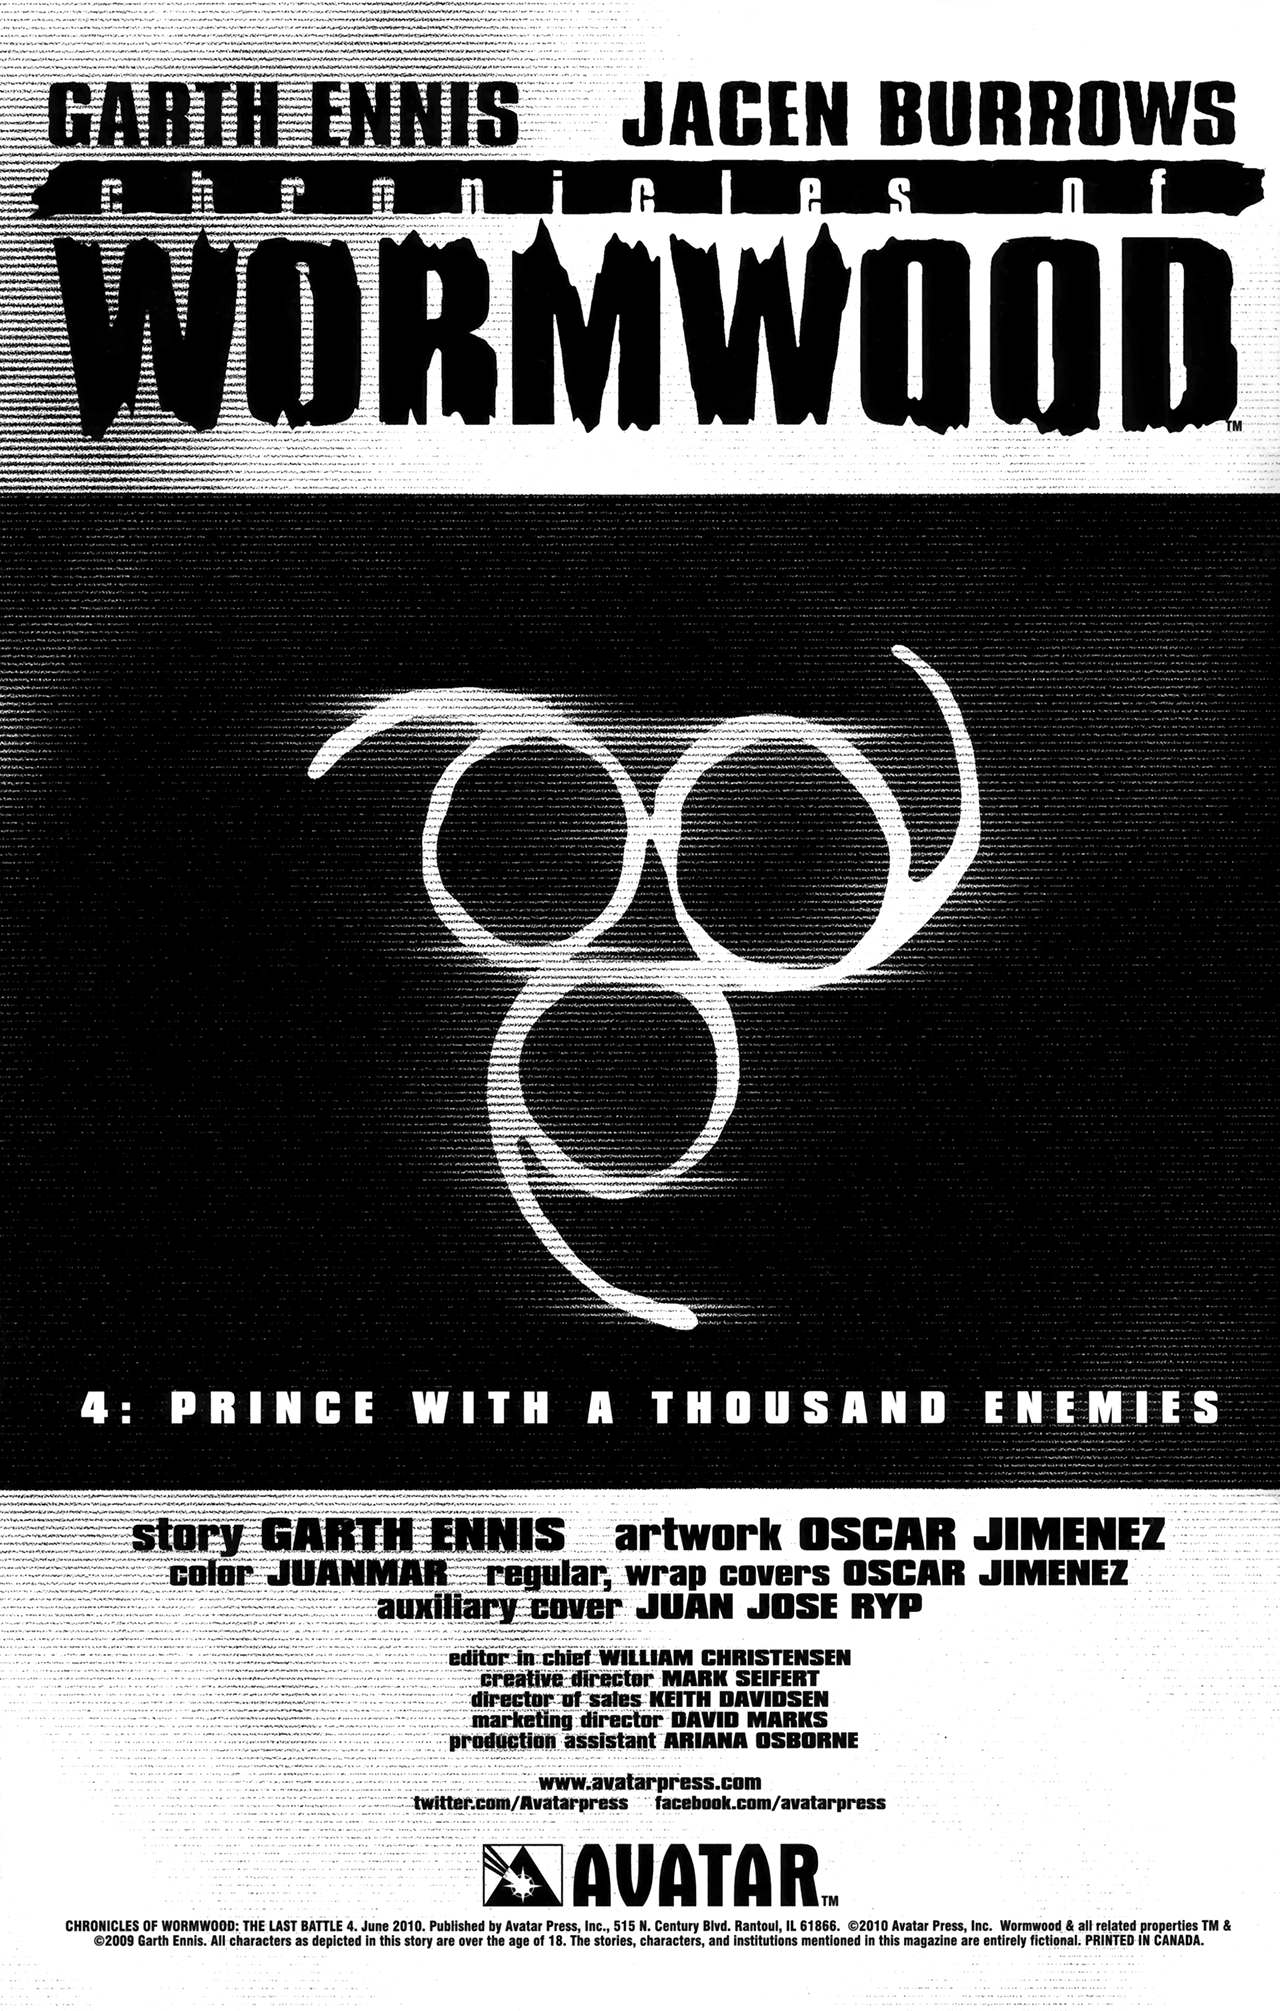 Read online Chronicles of Wormwood: The Last Battle comic -  Issue #4 - 3